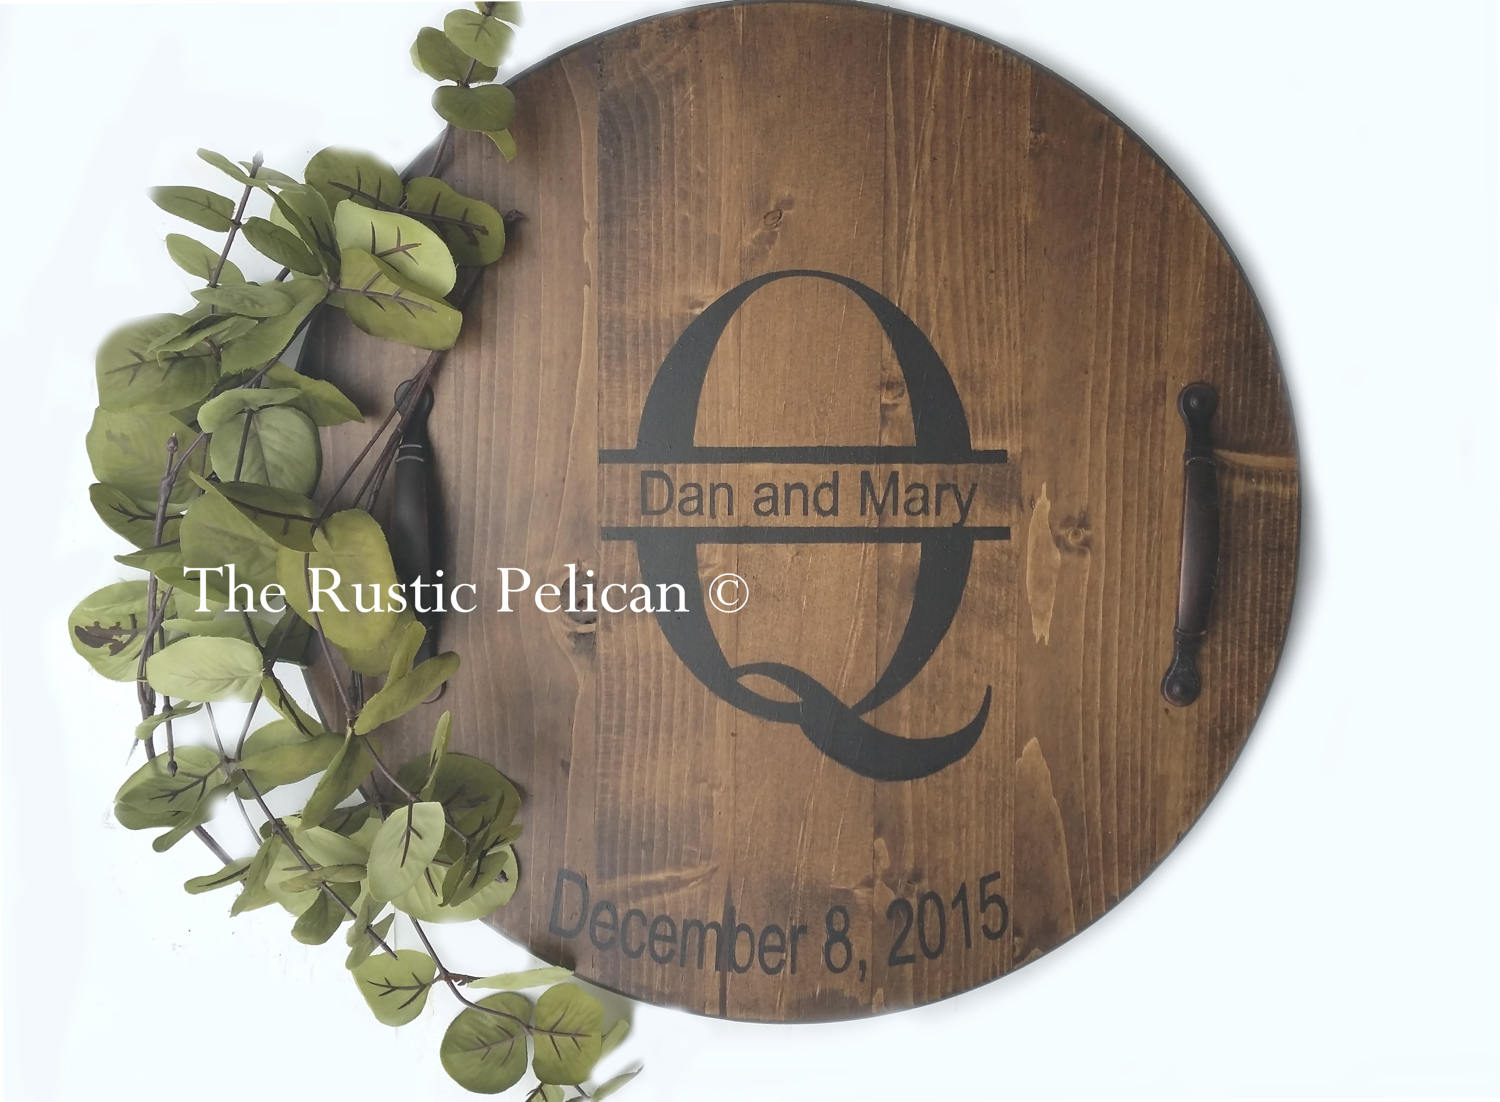 Personalized Wine Barrel Lazy Susan The Rustic Pelican